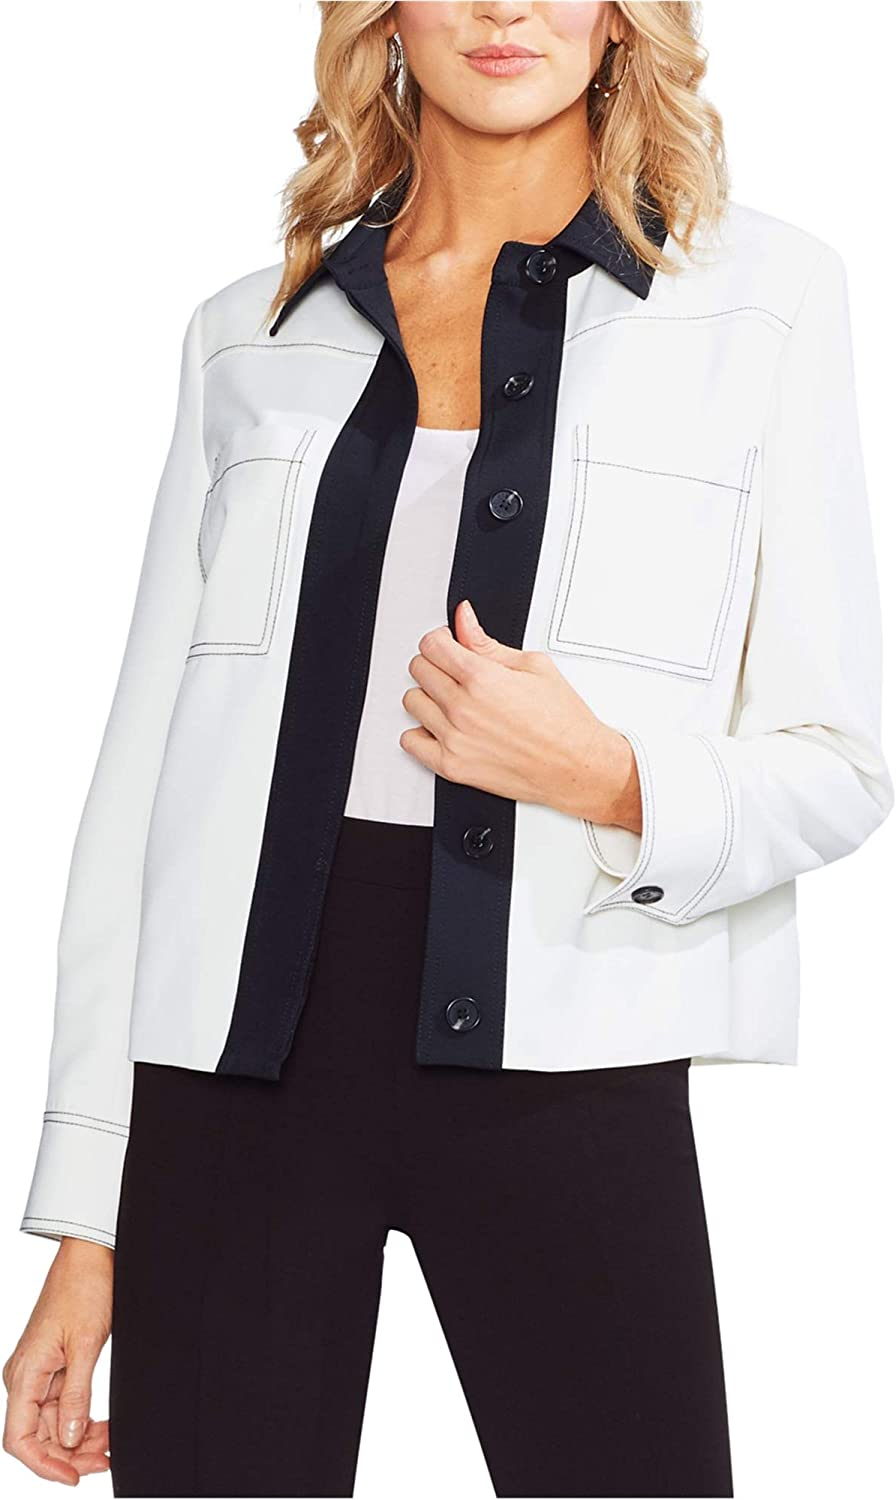 Industry No. 1 Vince Camuto Womens Colorblocked 10 Over item handling ☆ Jacket Off-White